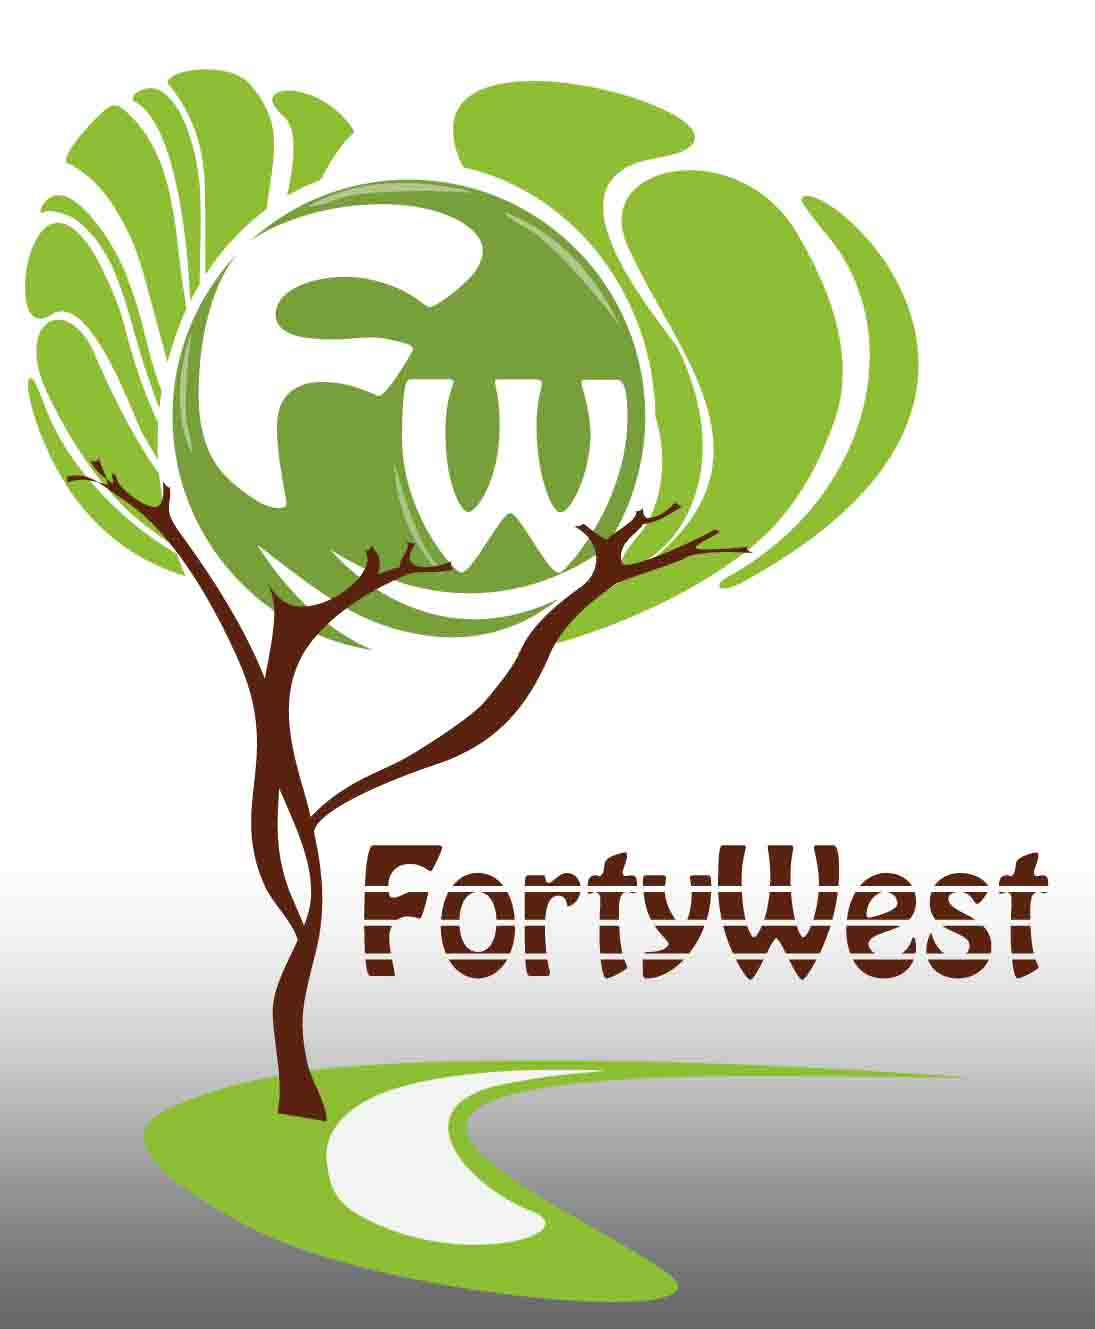 Logo Design by Aj Ong - Entry No. 97 in the Logo Design Contest Unique Logo Design Wanted for Forty West.